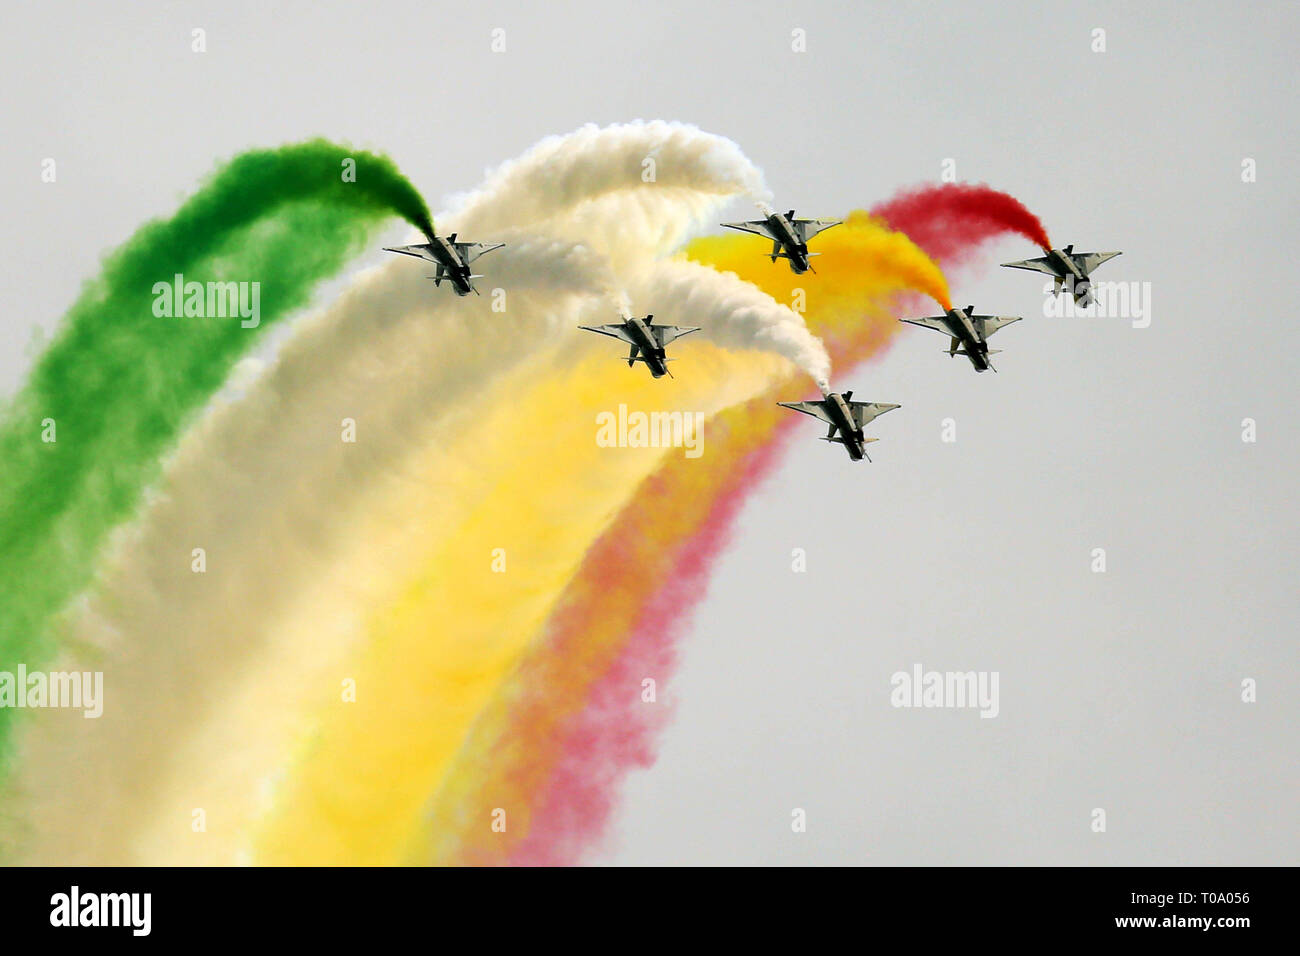 Islamabad, Pakistan. 18th Mar, 2019. J-10 fighter jets of China's Bayi Aerobatic Team perform during the rehearsal of the Pakistan National Day army parade in Islamabad, capital of Pakistan, March 18, 2019. Pakistan National Day, also known as Pakistan Resolution Day or Republic Day, is celebrated annually on March 23. Credit: Ahmad Kamal/Xinhua/Alamy Live News - Stock Image